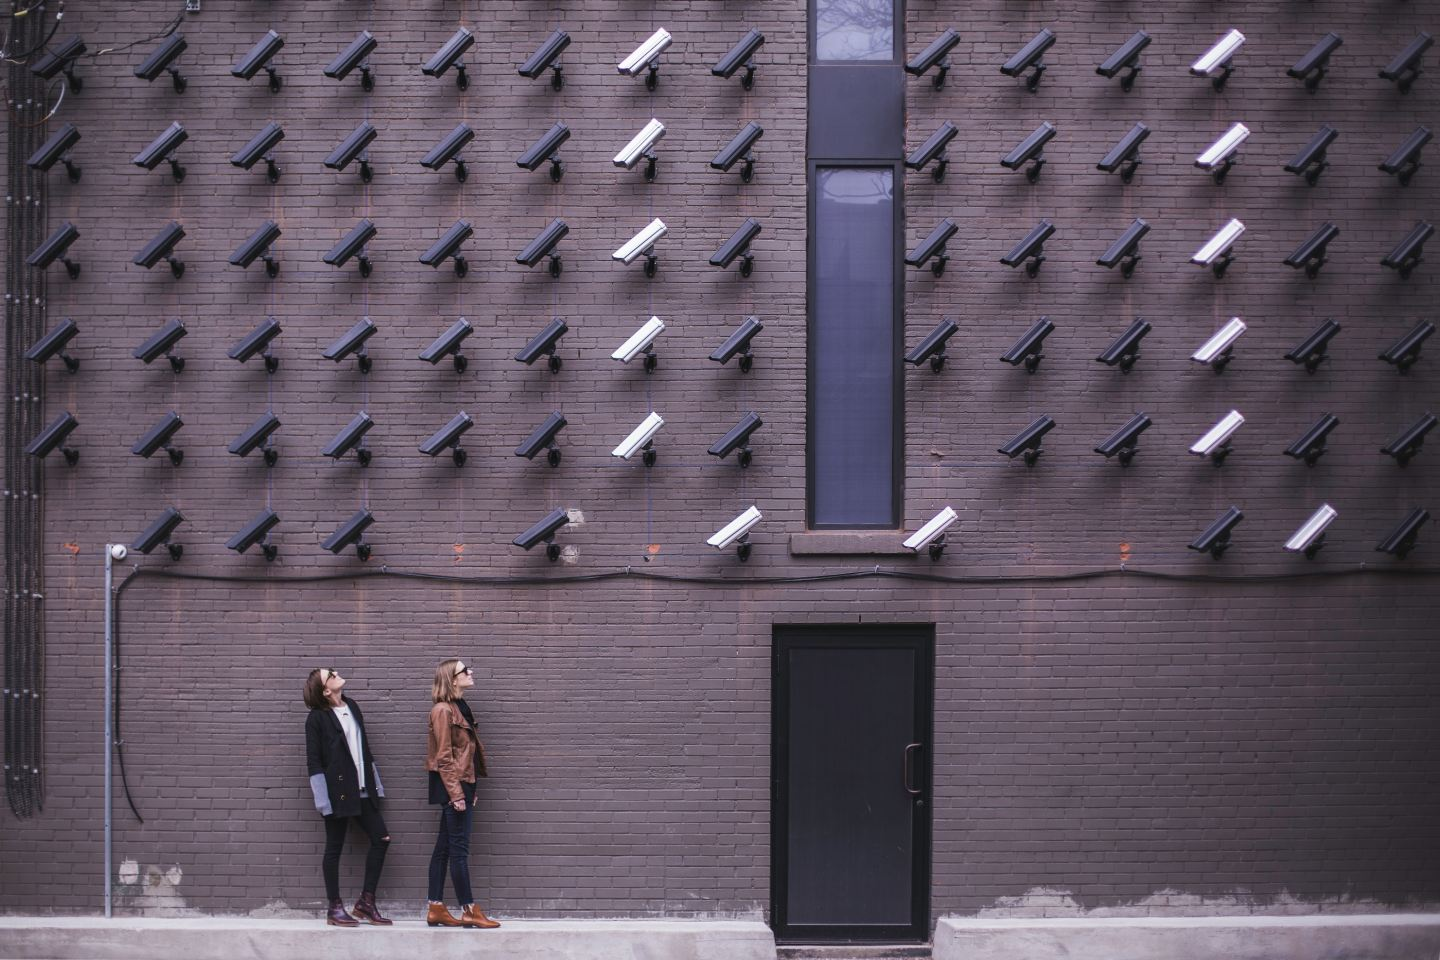 AMAZON RING Doorbell To Build Database Using FACIAL Recognition Technology - More Surveillance!